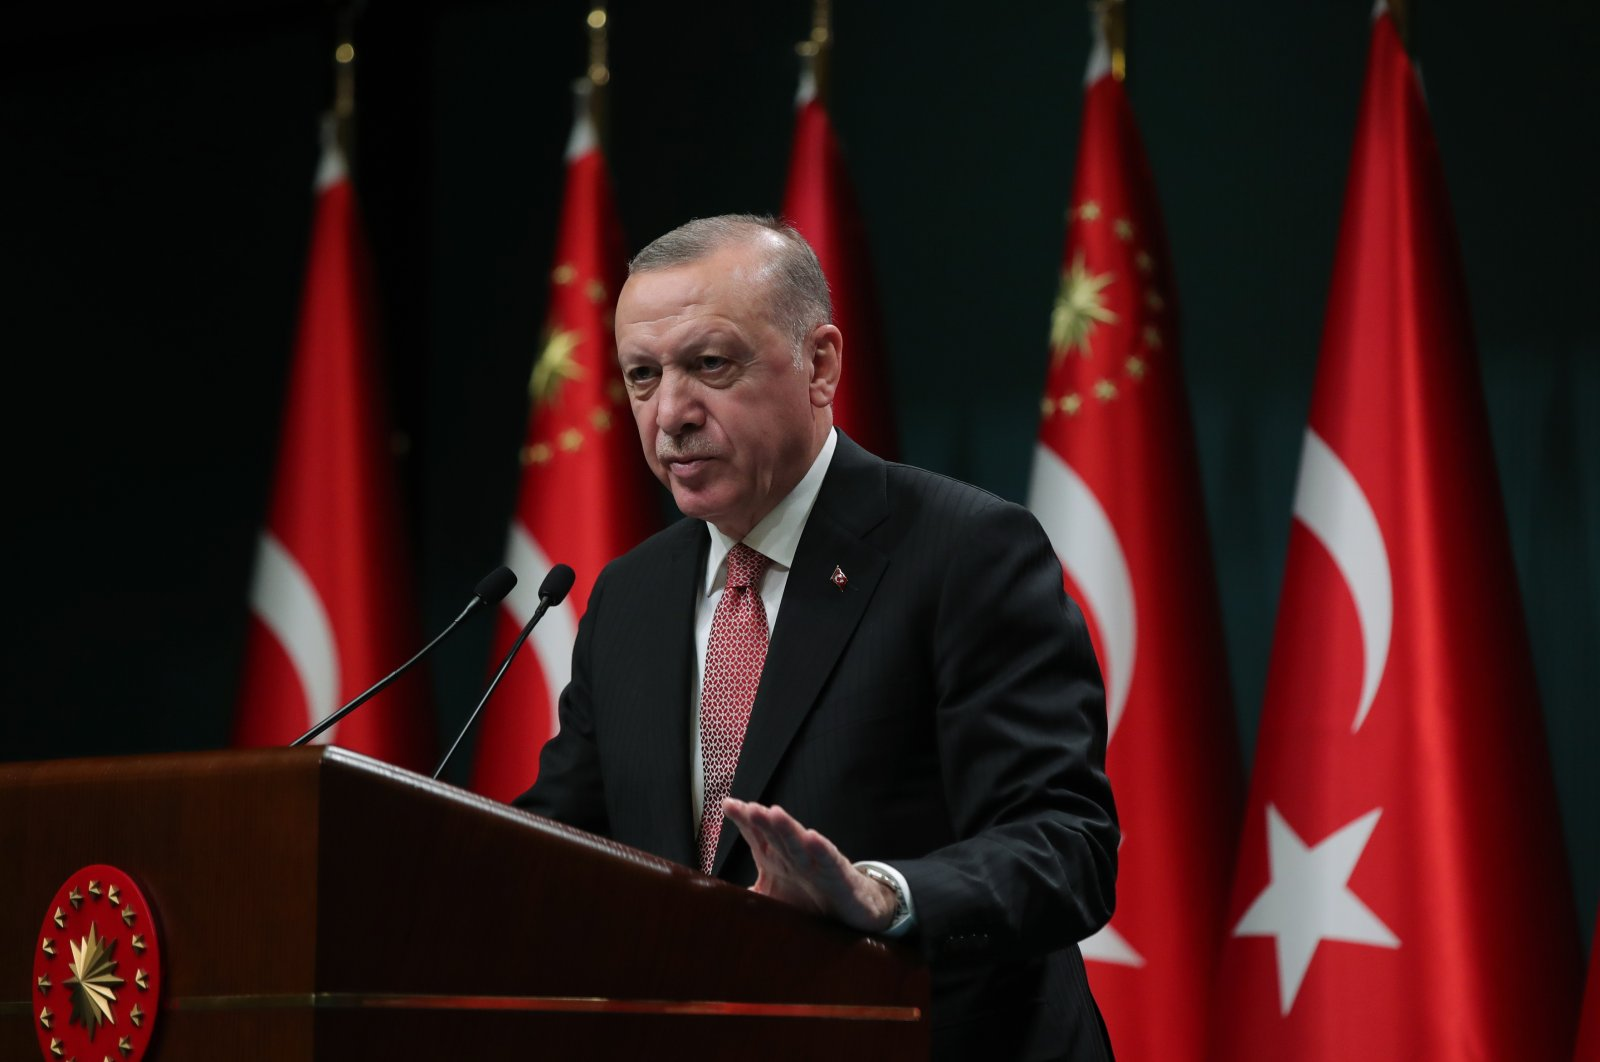 President Recep Tayyip Erdoğan delivers a speech after the Cabinet meeting in the capital Ankara, Turkey, June 21, 2021. (AA Photo)